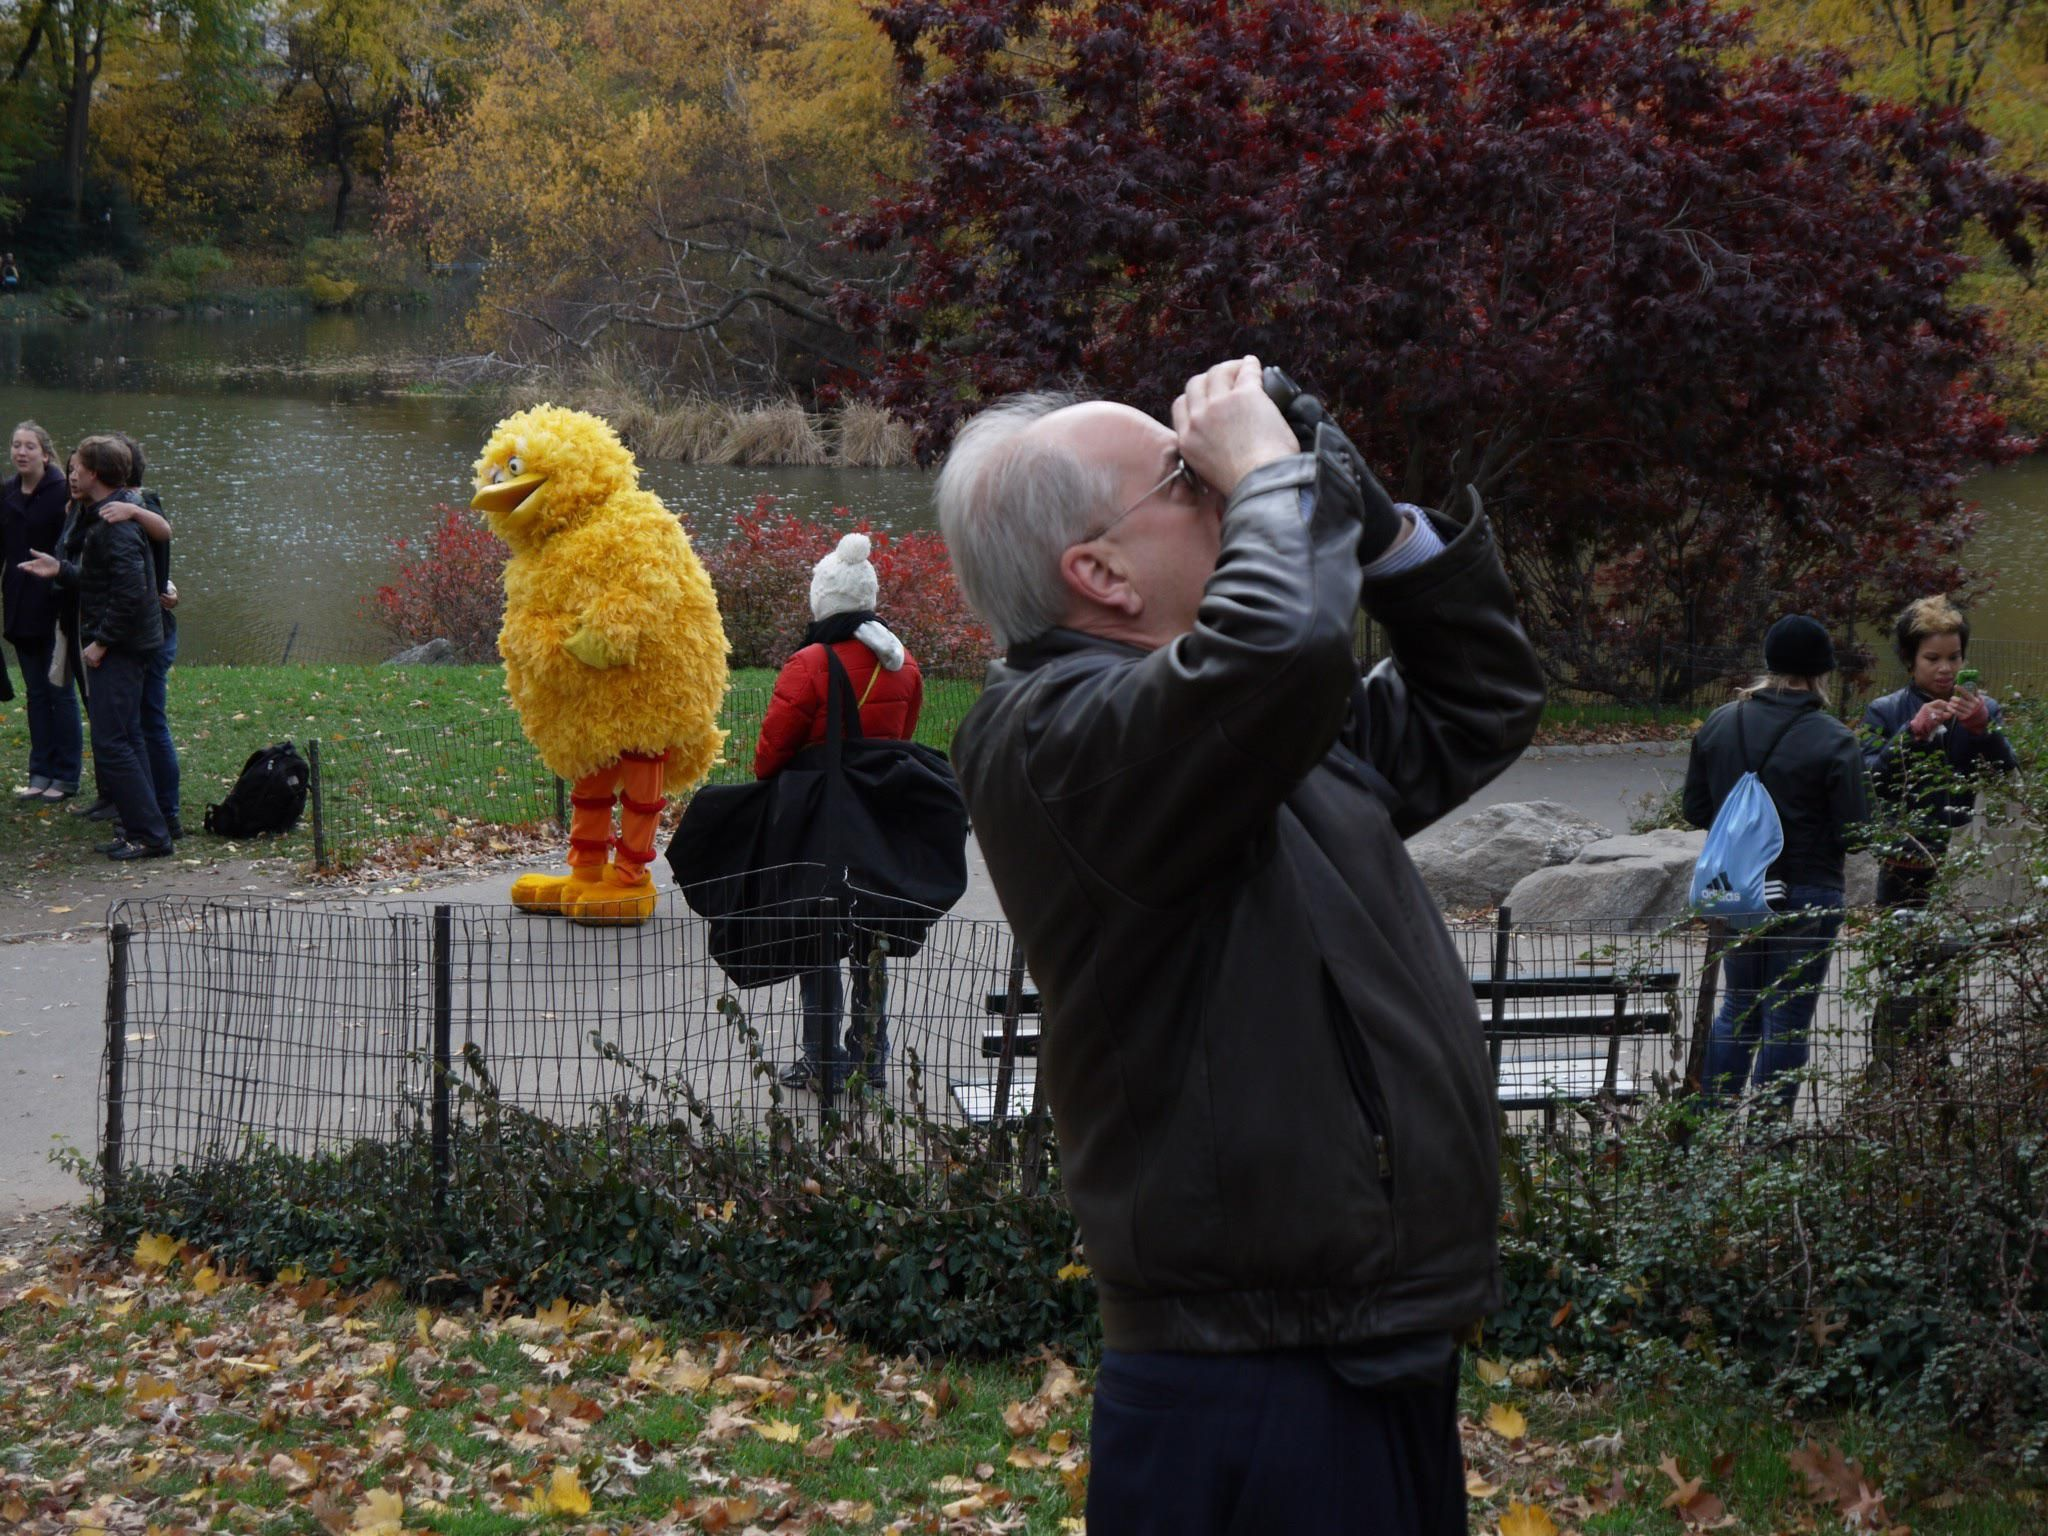 My father-in-law bird watching in Central Park.